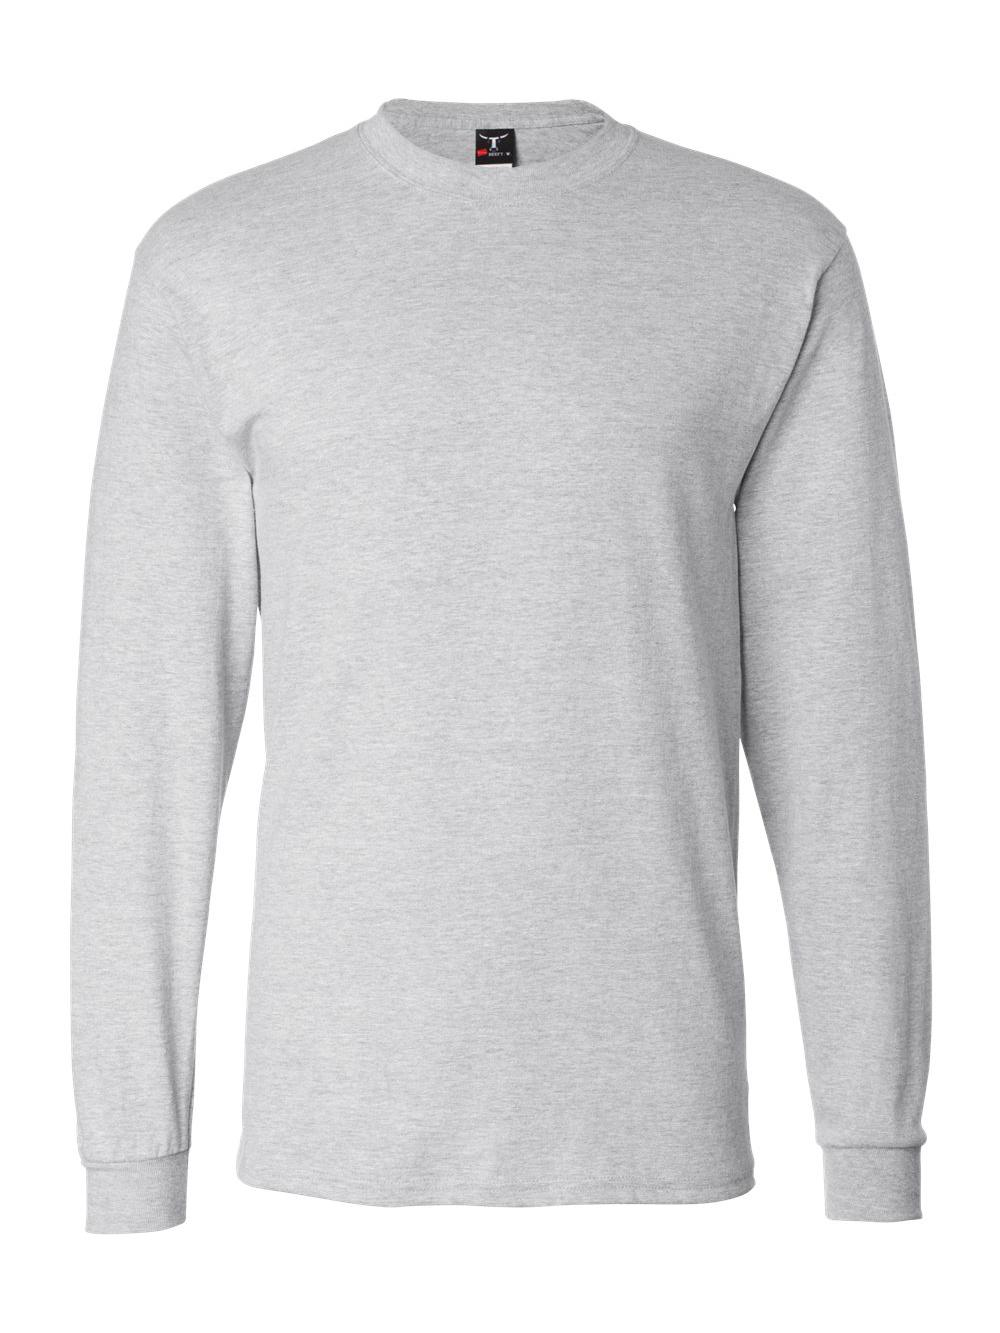 c9d03ded Hanesbrands Inc 5186 Hanes Mens Beefy-t Long-sleeve T-shirt. About this  product. Picture 1 of 4; Picture 2 of 4 ...